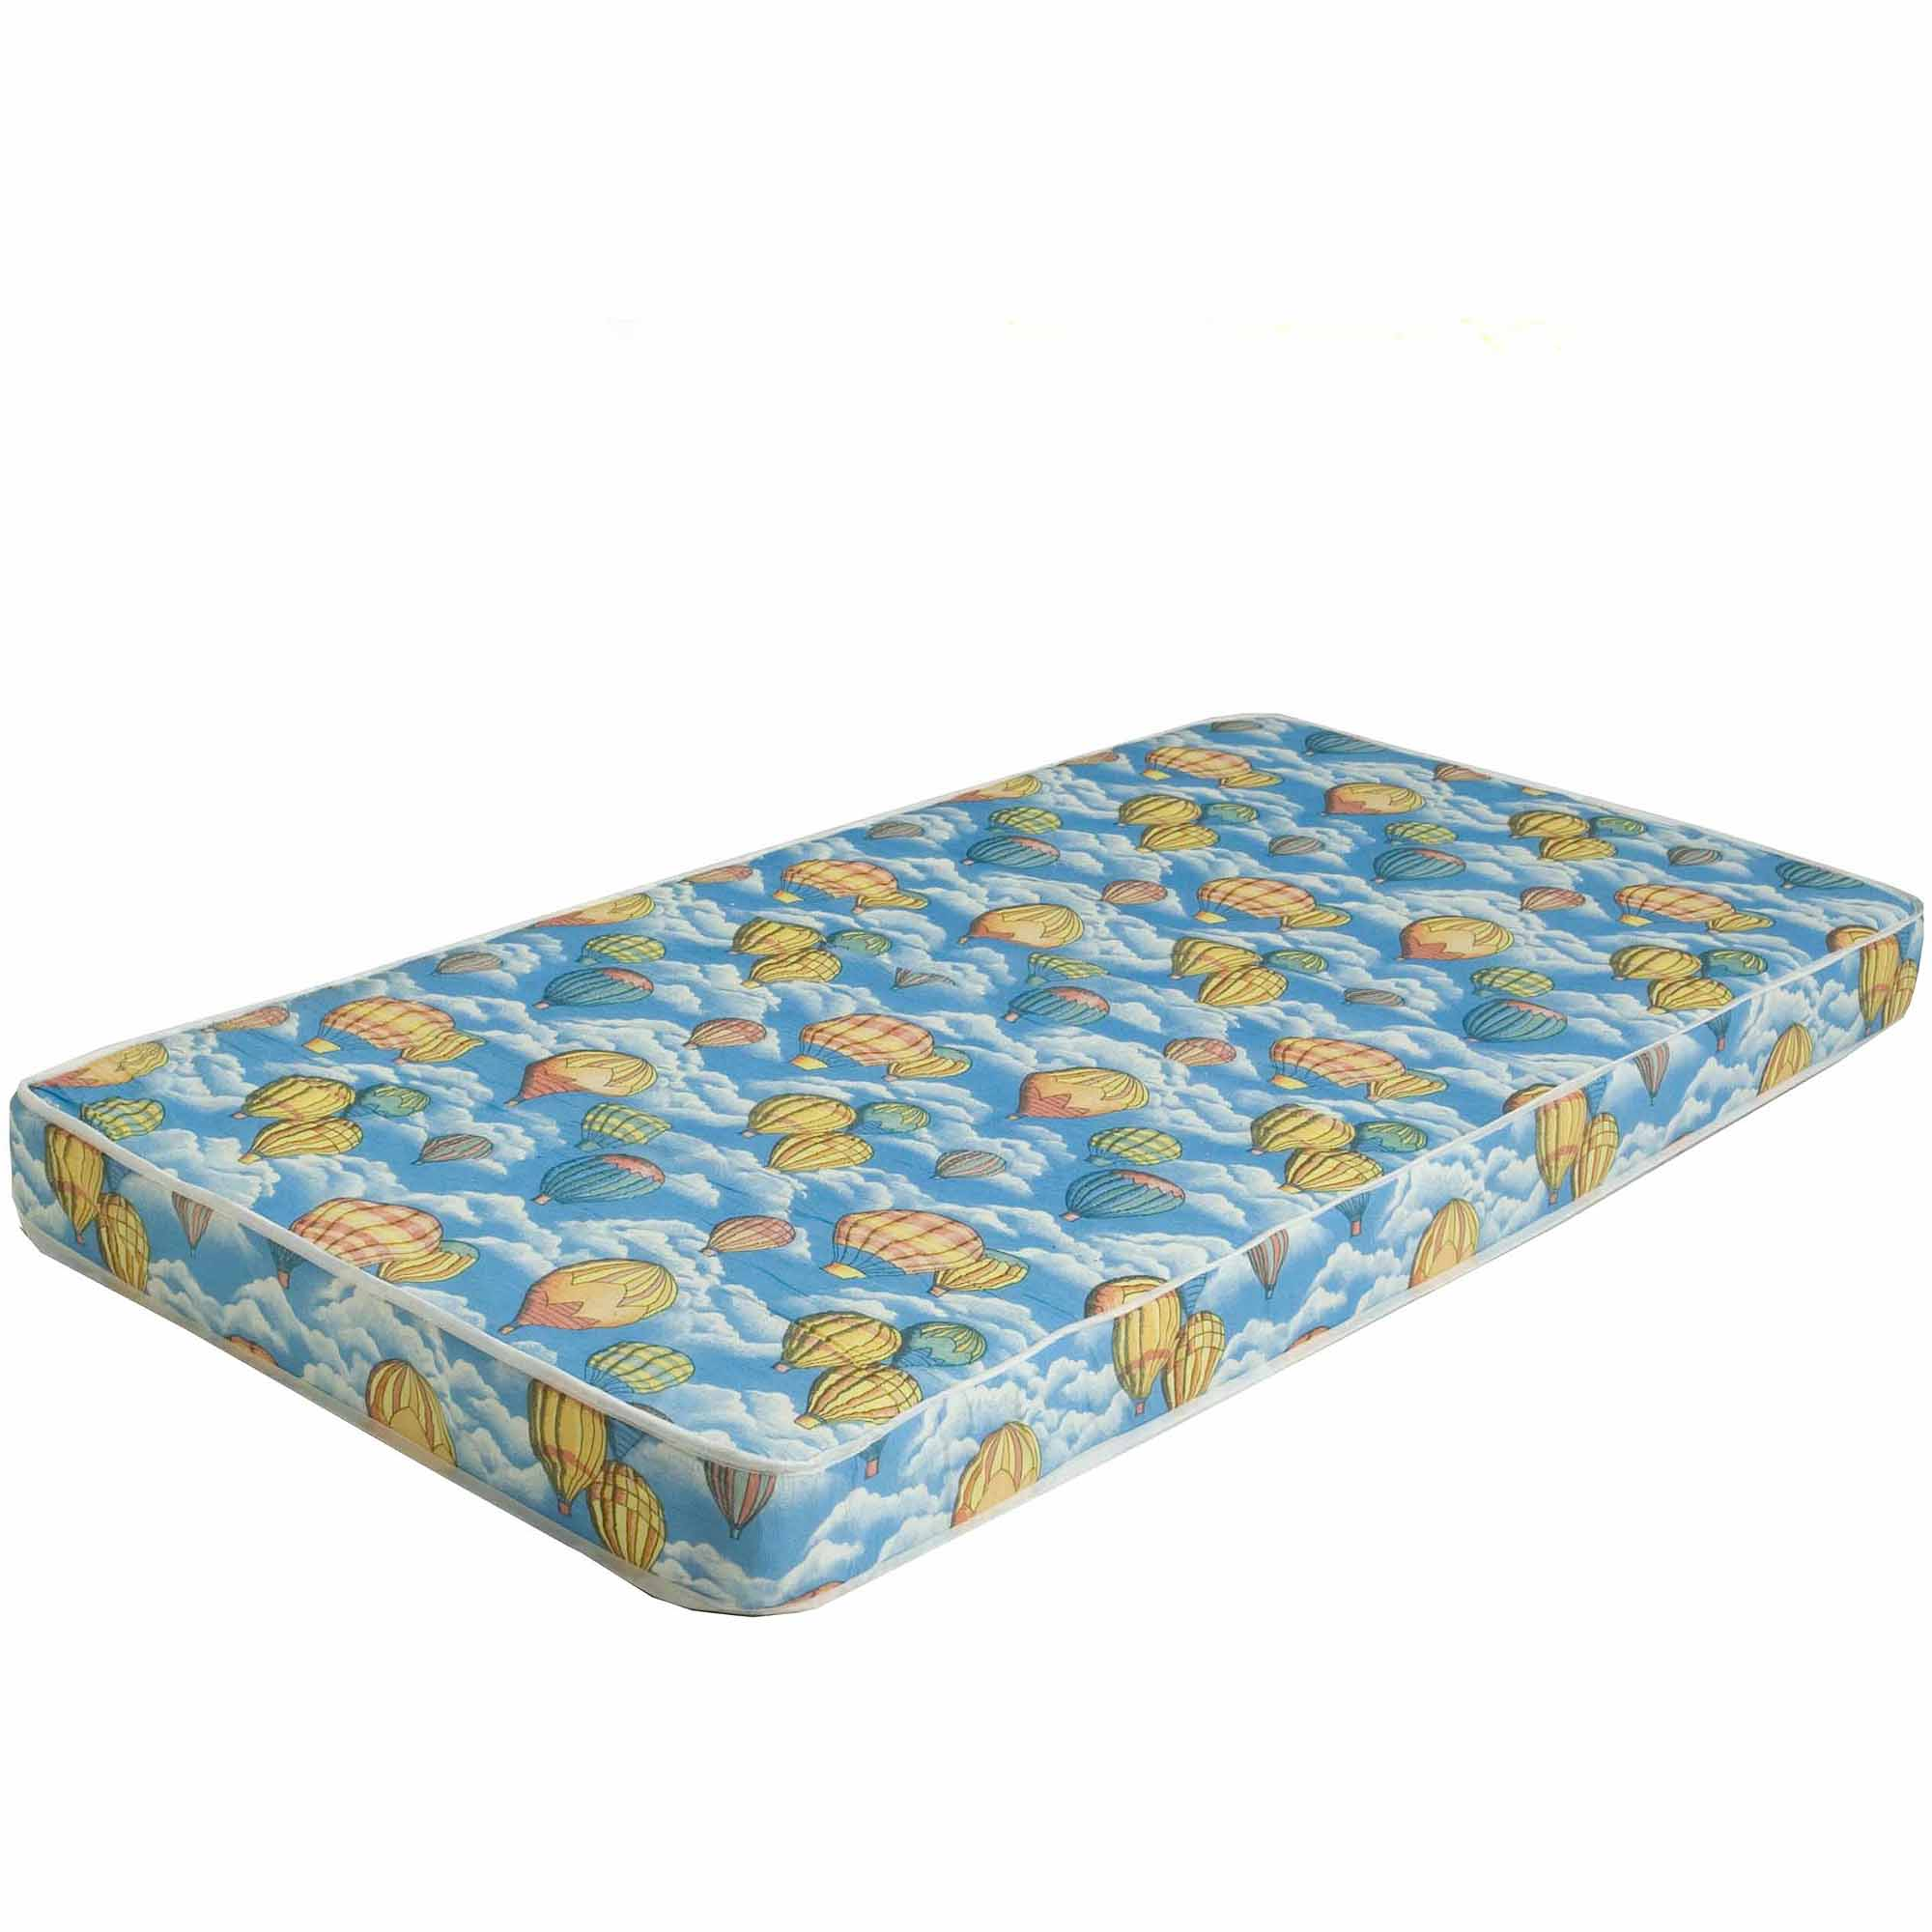 Bunk Bed or Dorm Firm Comfort 5-inch Mattress in Balloon Pattern